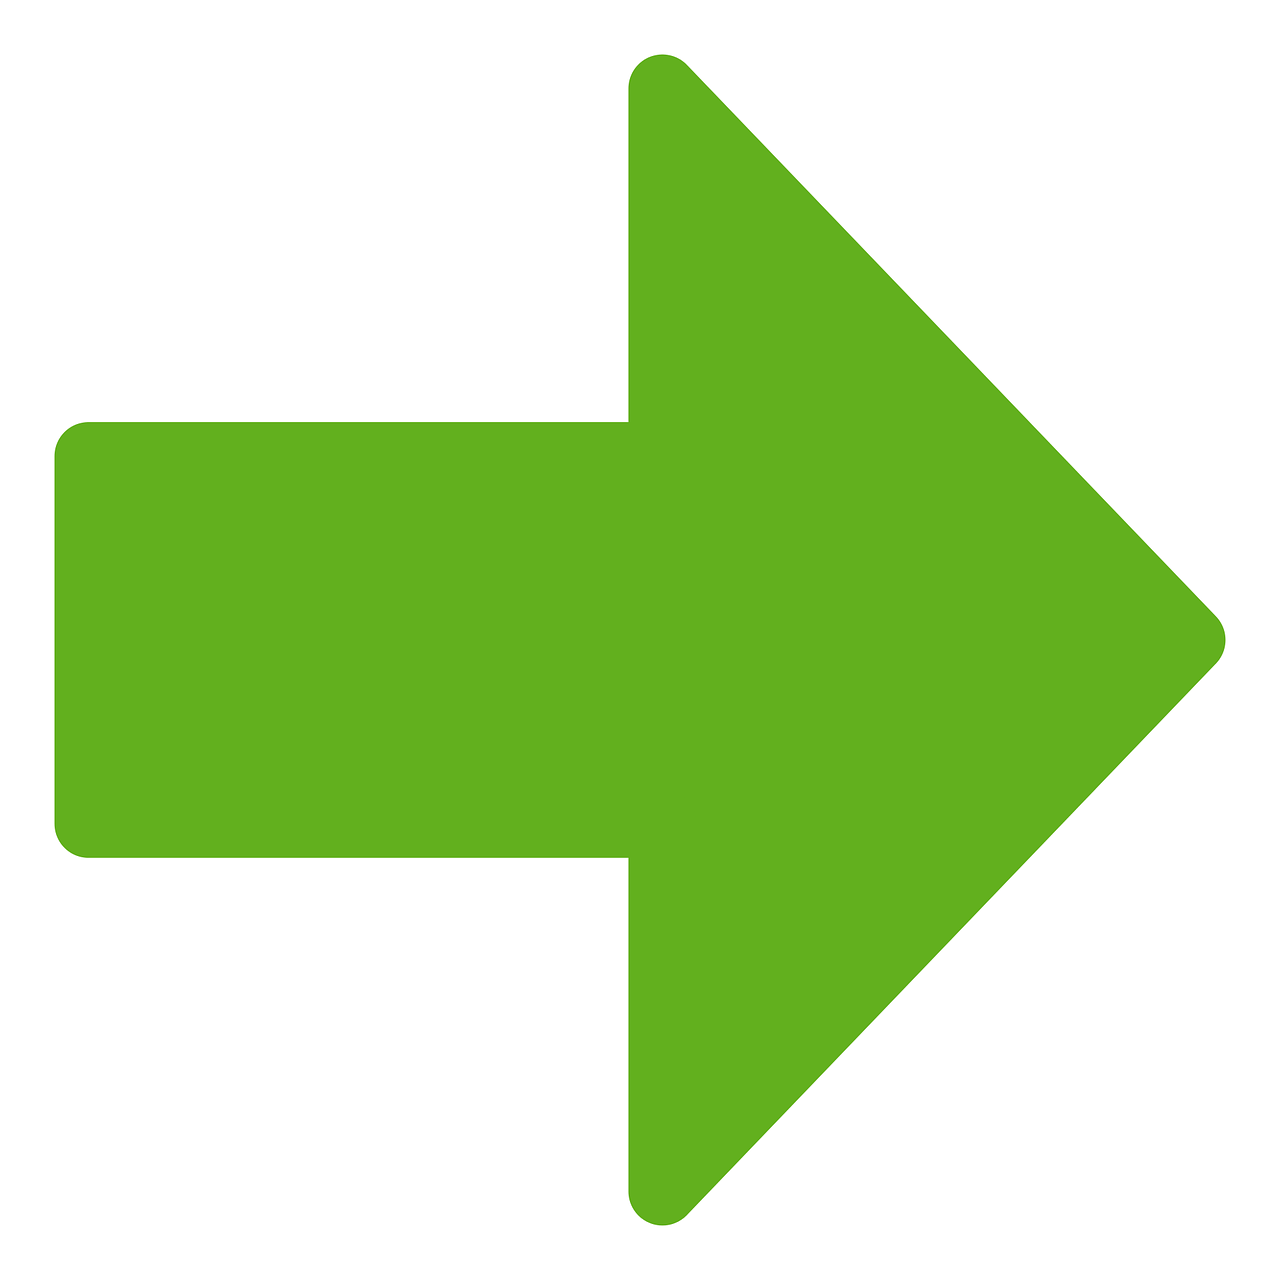 green 1.png